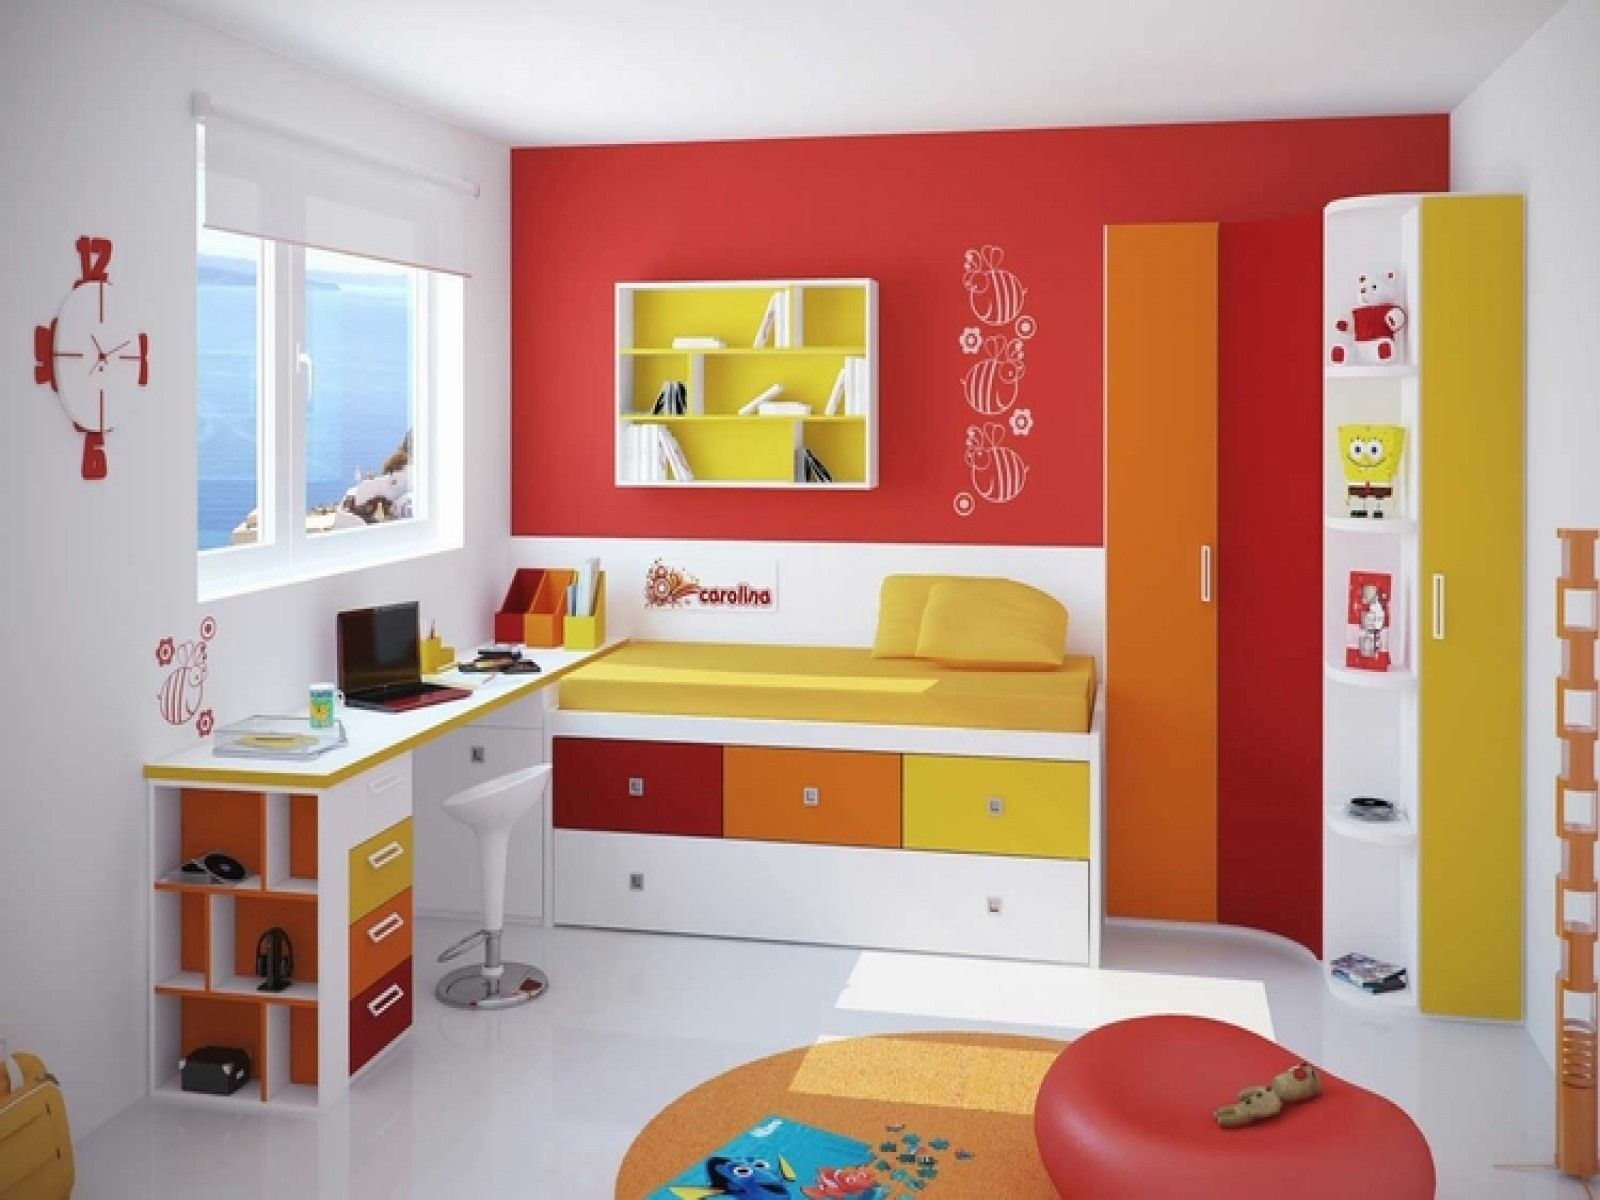 Bedroom Charming Color For Kids Room With Red White Schemes On The Wall Decorating Ideas And Yellow Wooden Floating Shelves Attached